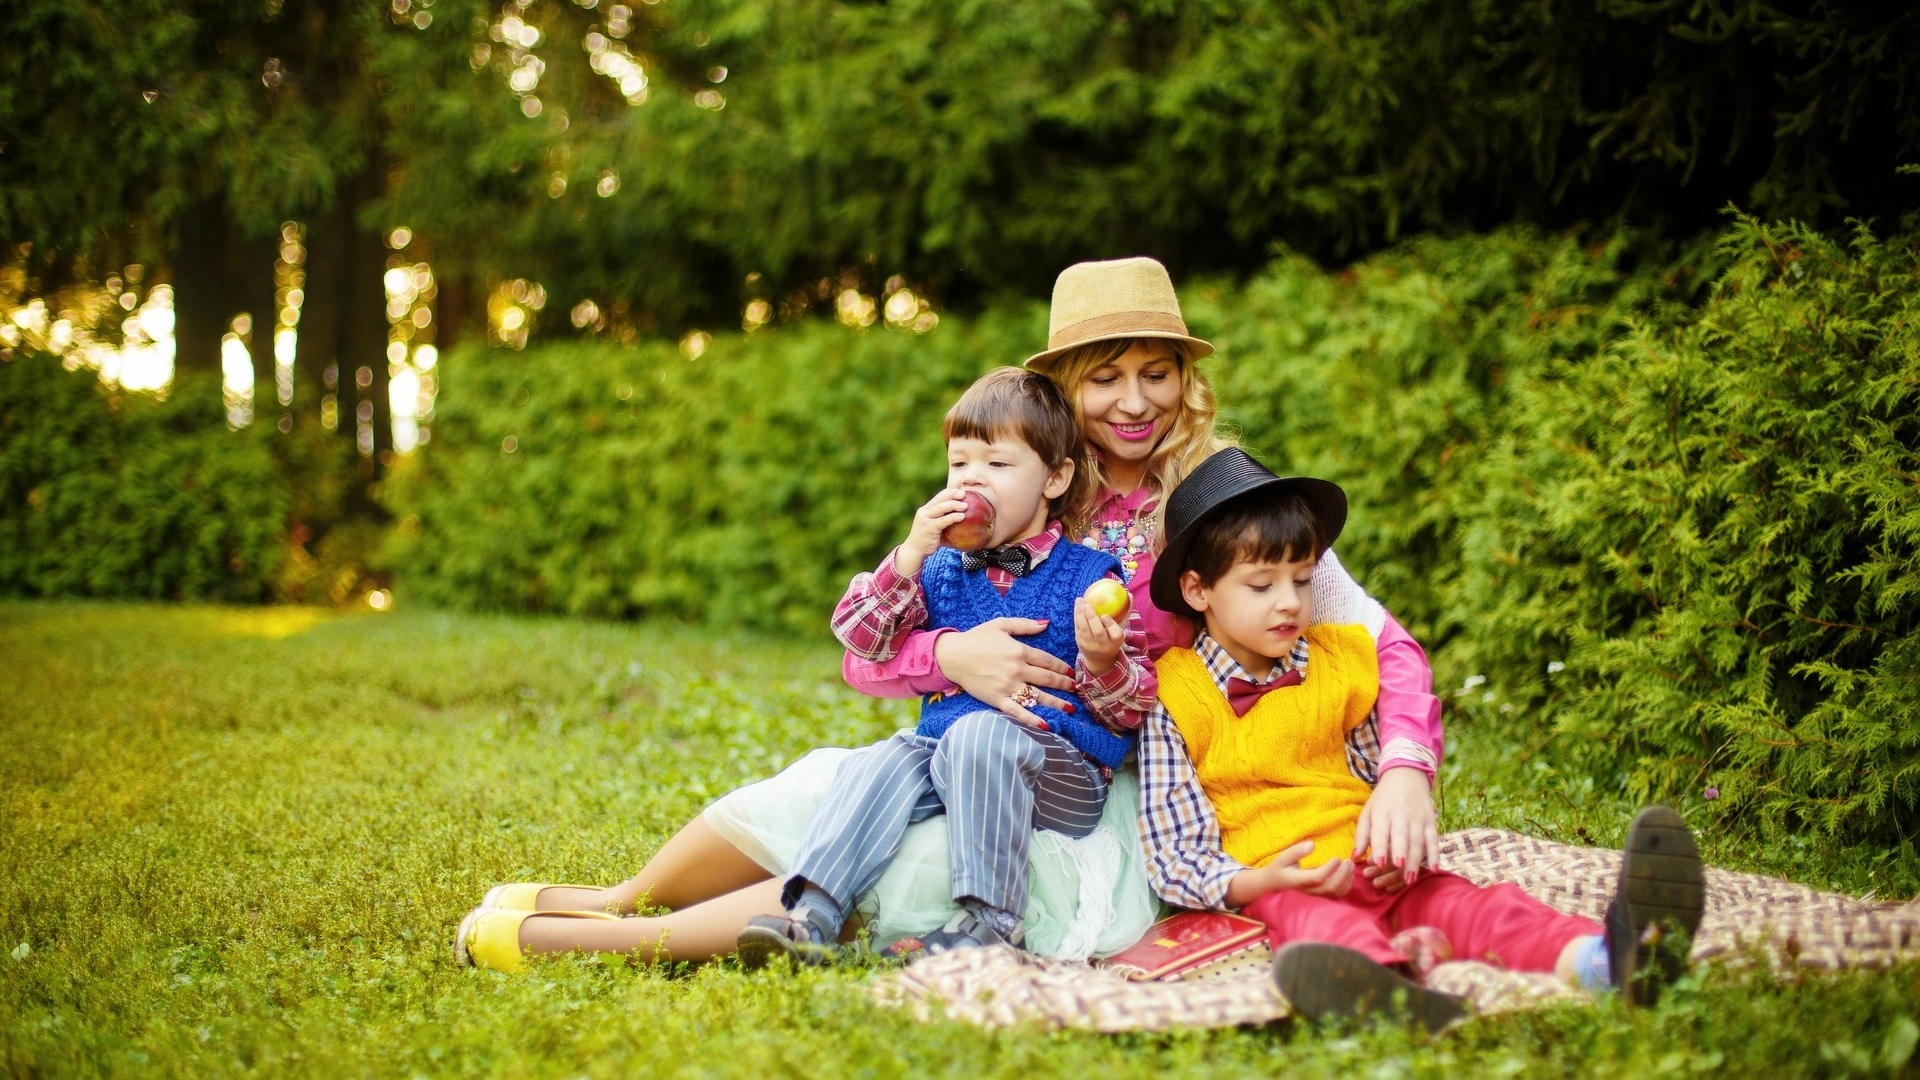 Mother with kids on lawn grass